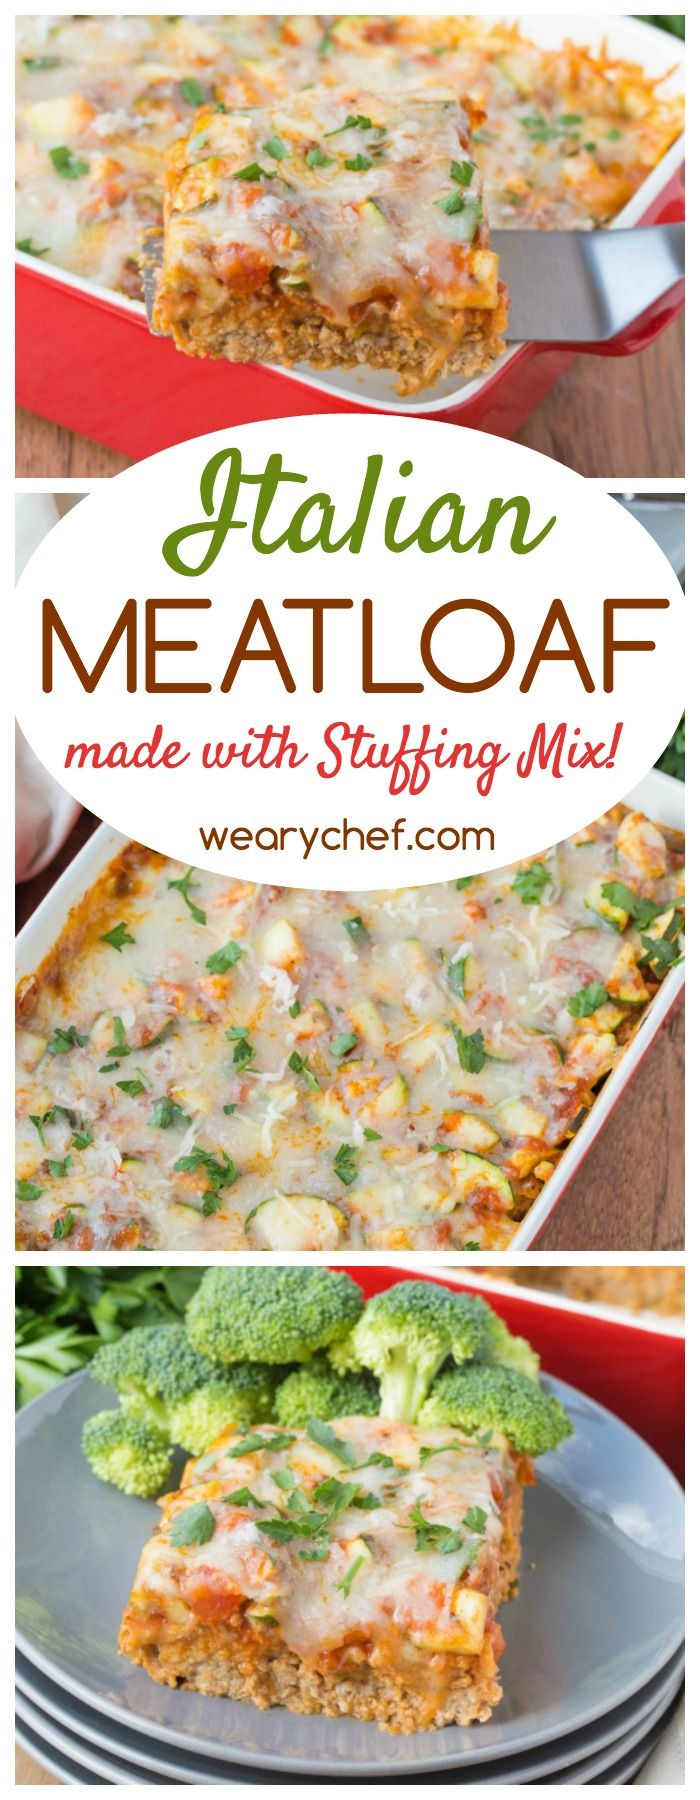 ... Top Meatloaf on Pinterest | Stuffing Mix, Loaf Pan and 8 Can Soup